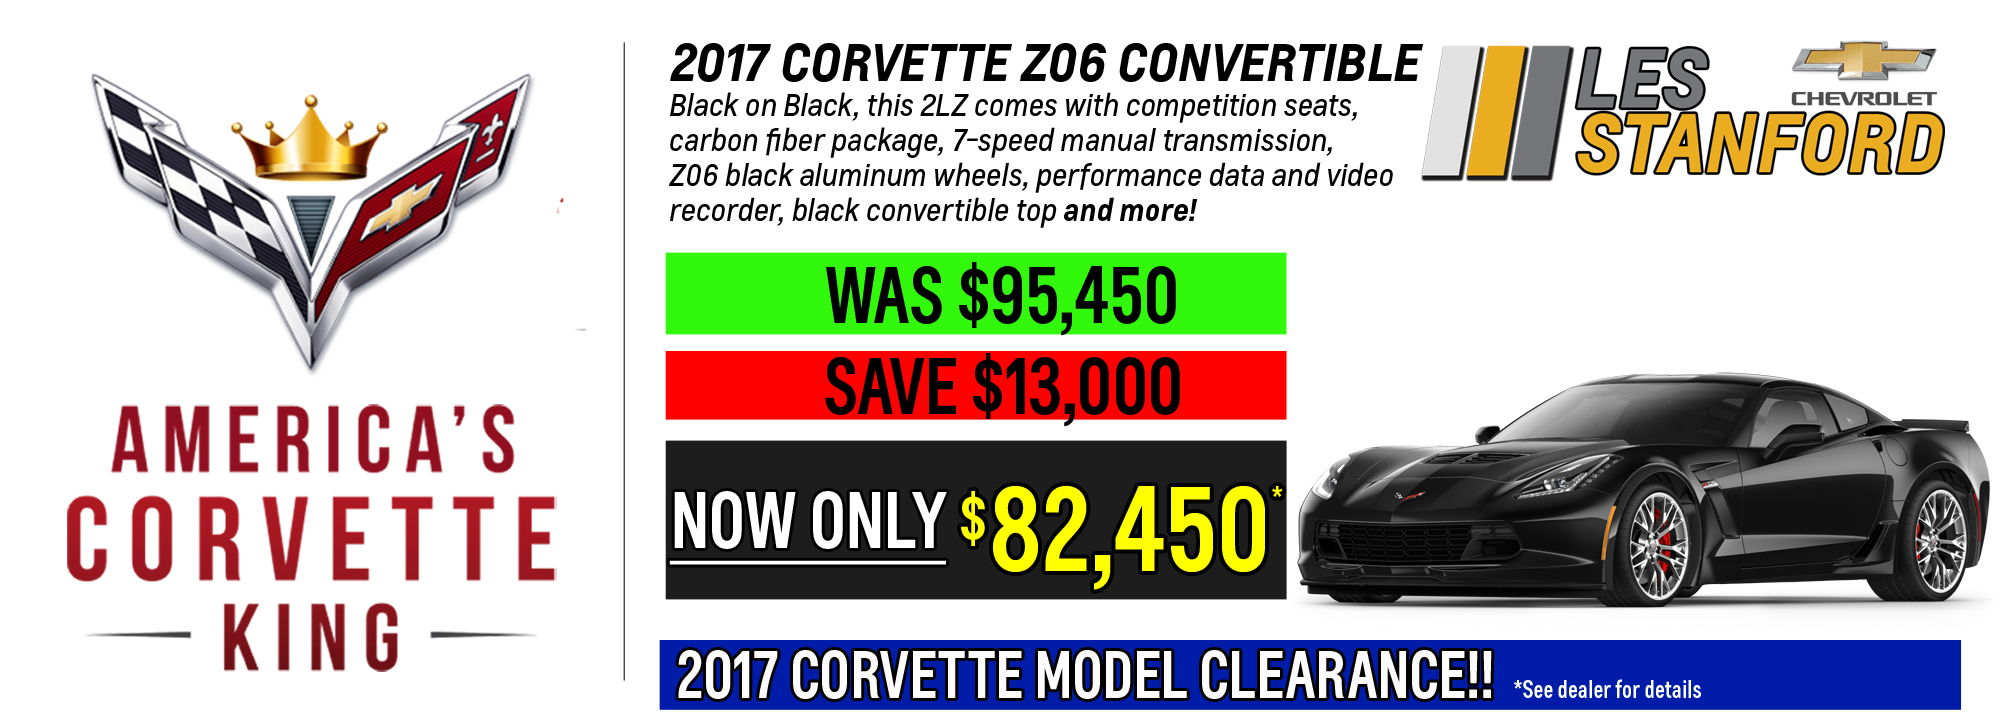 13 000 Off Msrp On Any Remaining 2017 Corvette 18 Left To